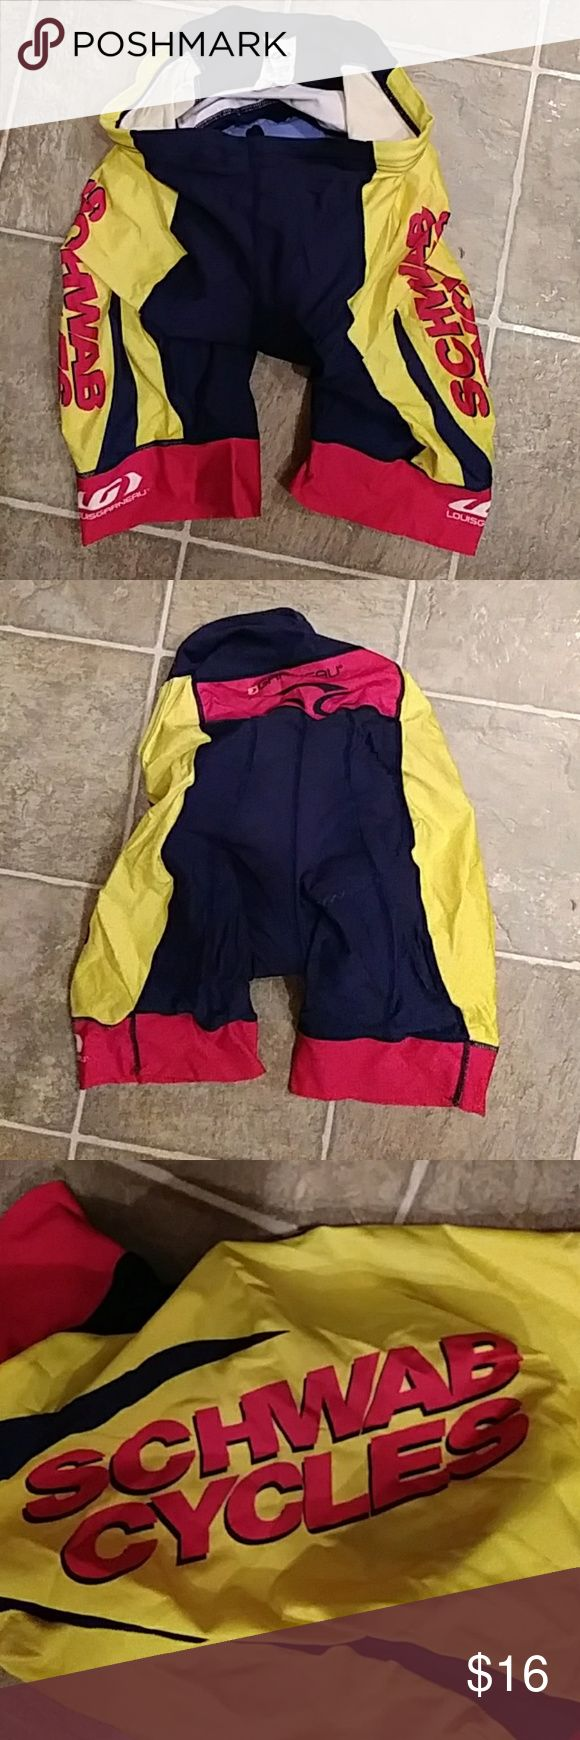 Mens LOUIS GARNEAU Padded Cycling Shorts LARGE Mens large. Yellow, black, red. Padded chamois is blue. 74% nylon 26% polyester. Pre owned. Excellent condition. louis garneau Shorts